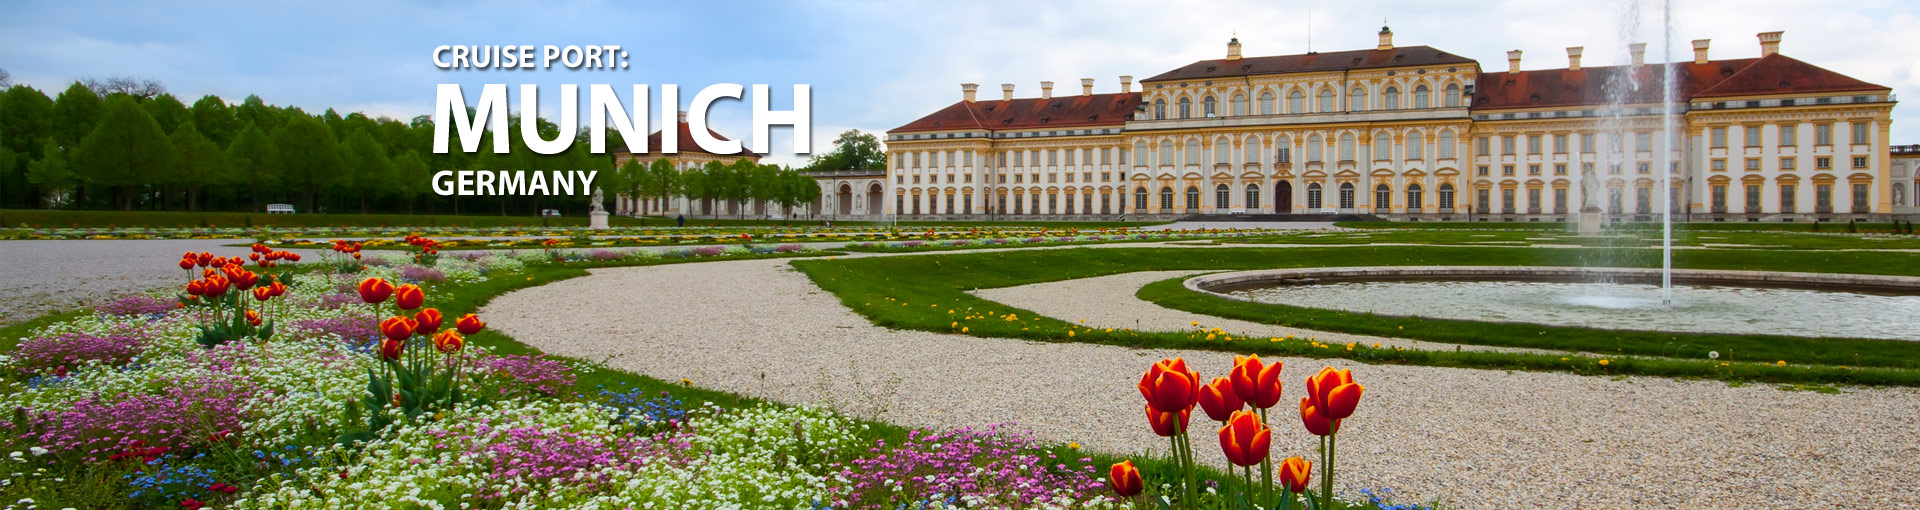 Cruises from Munich, Germany